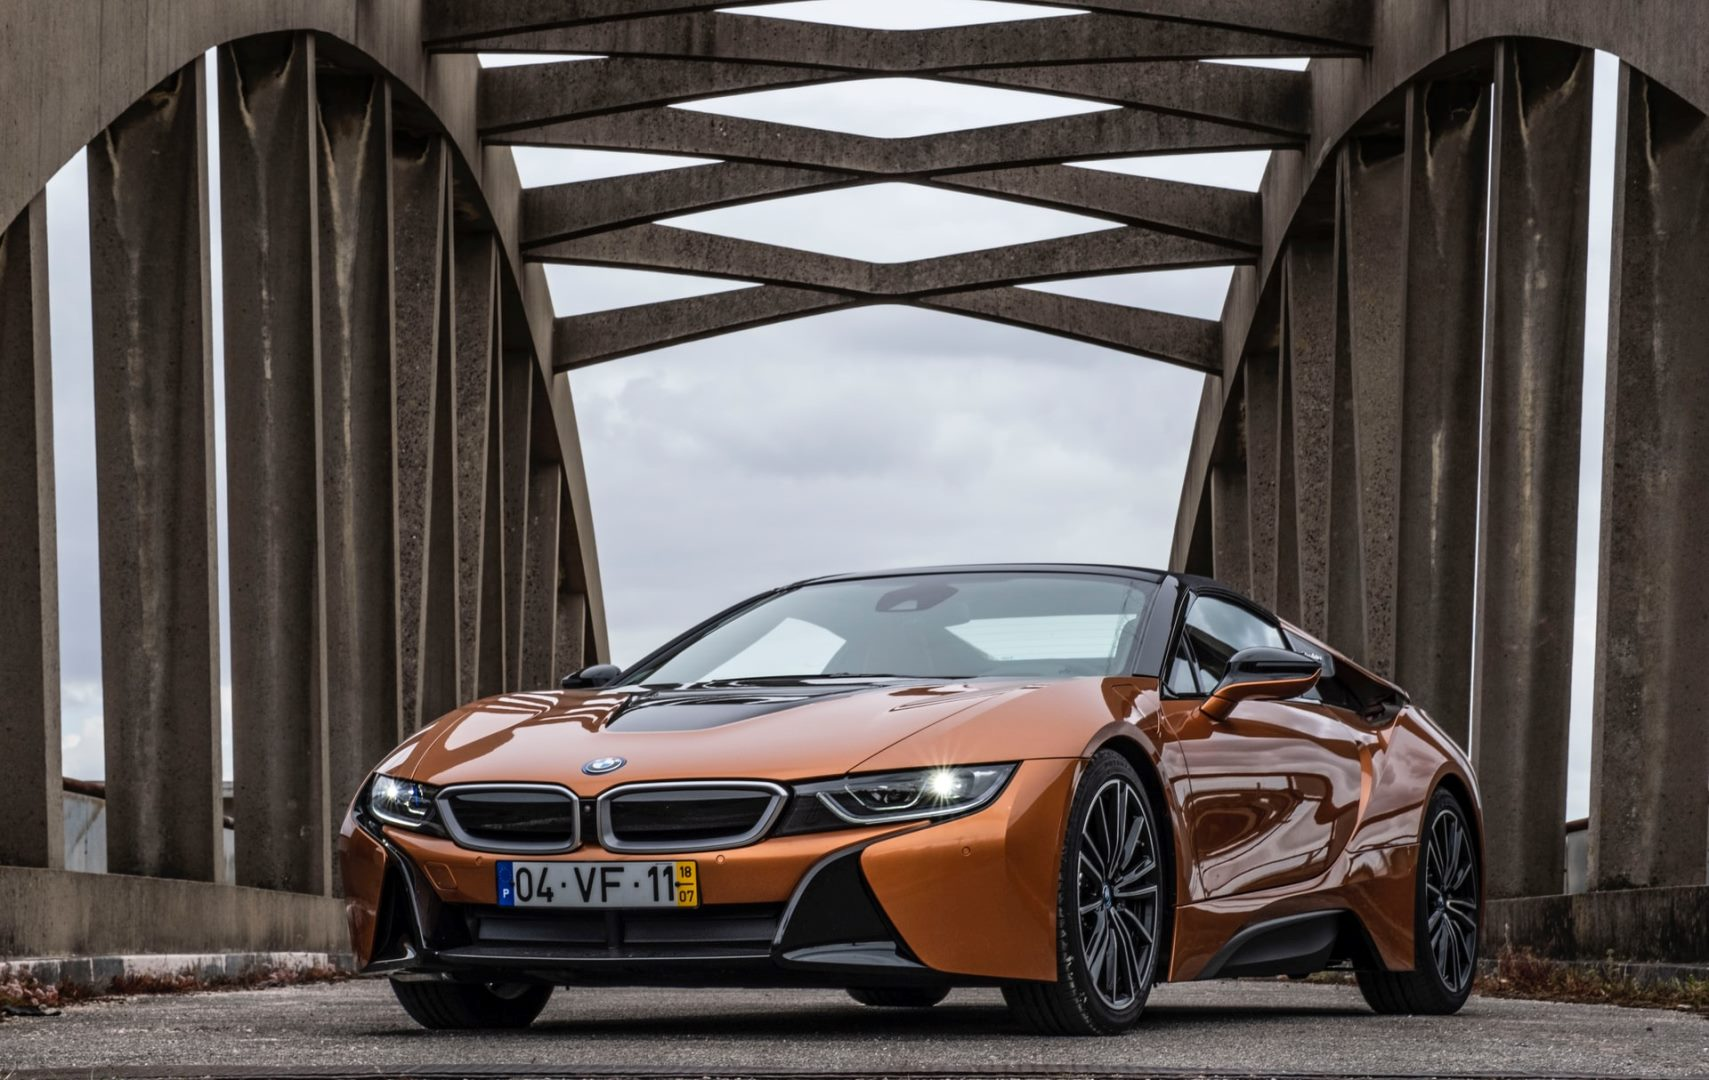 Top 5 Best Luxury Electric Cars in 2021